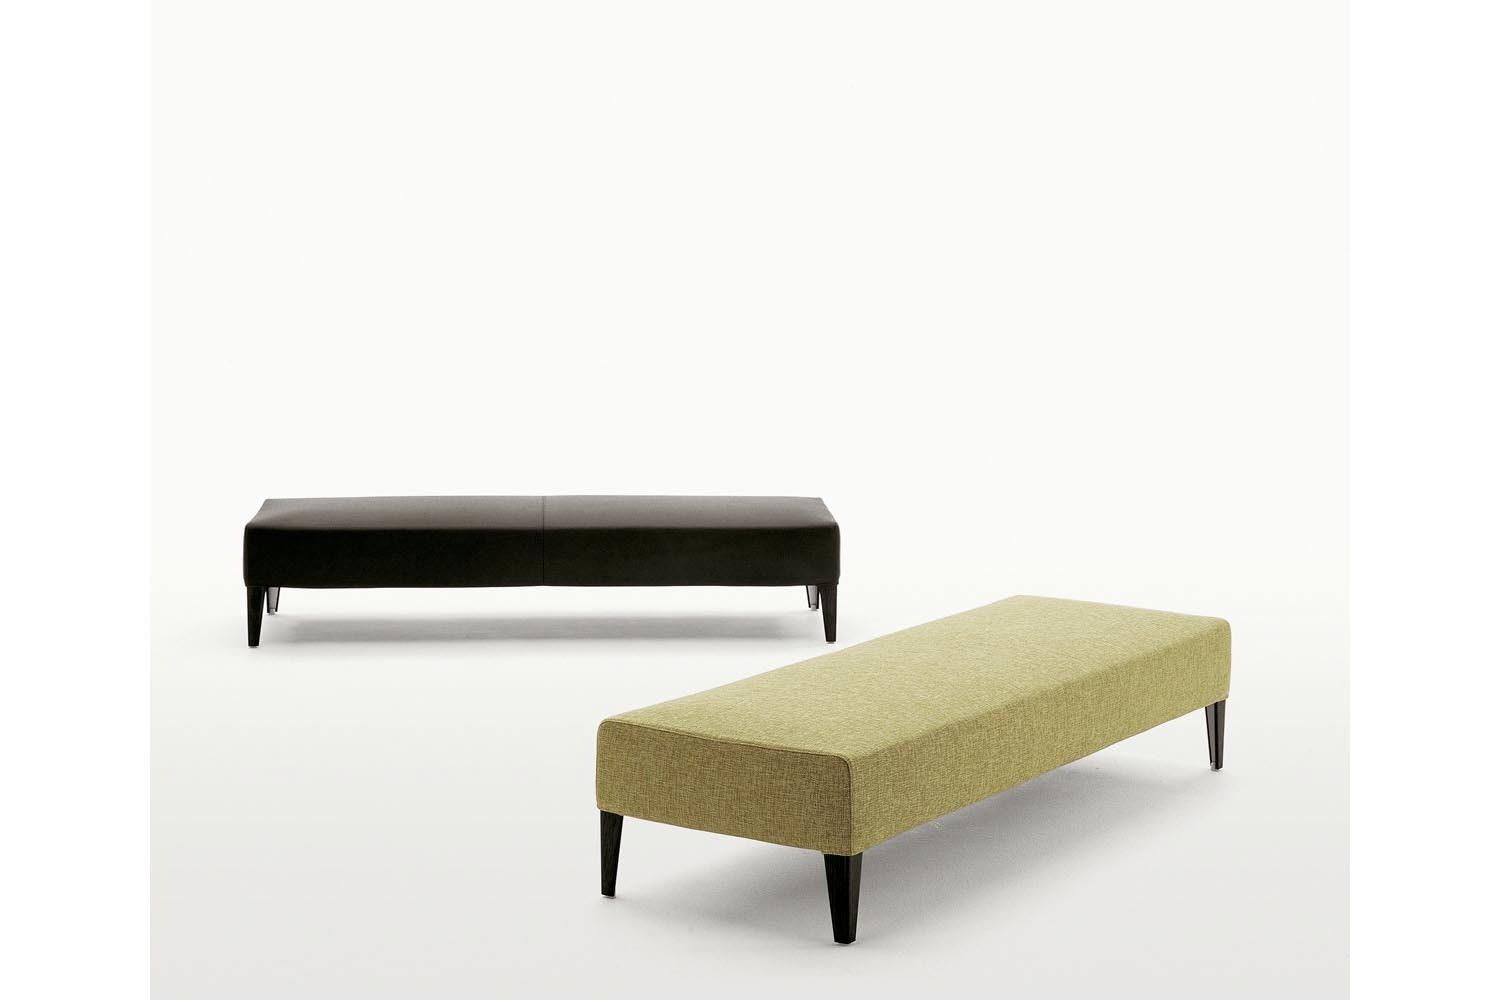 Filemone Bench by Antonio Citterio for Maxalto